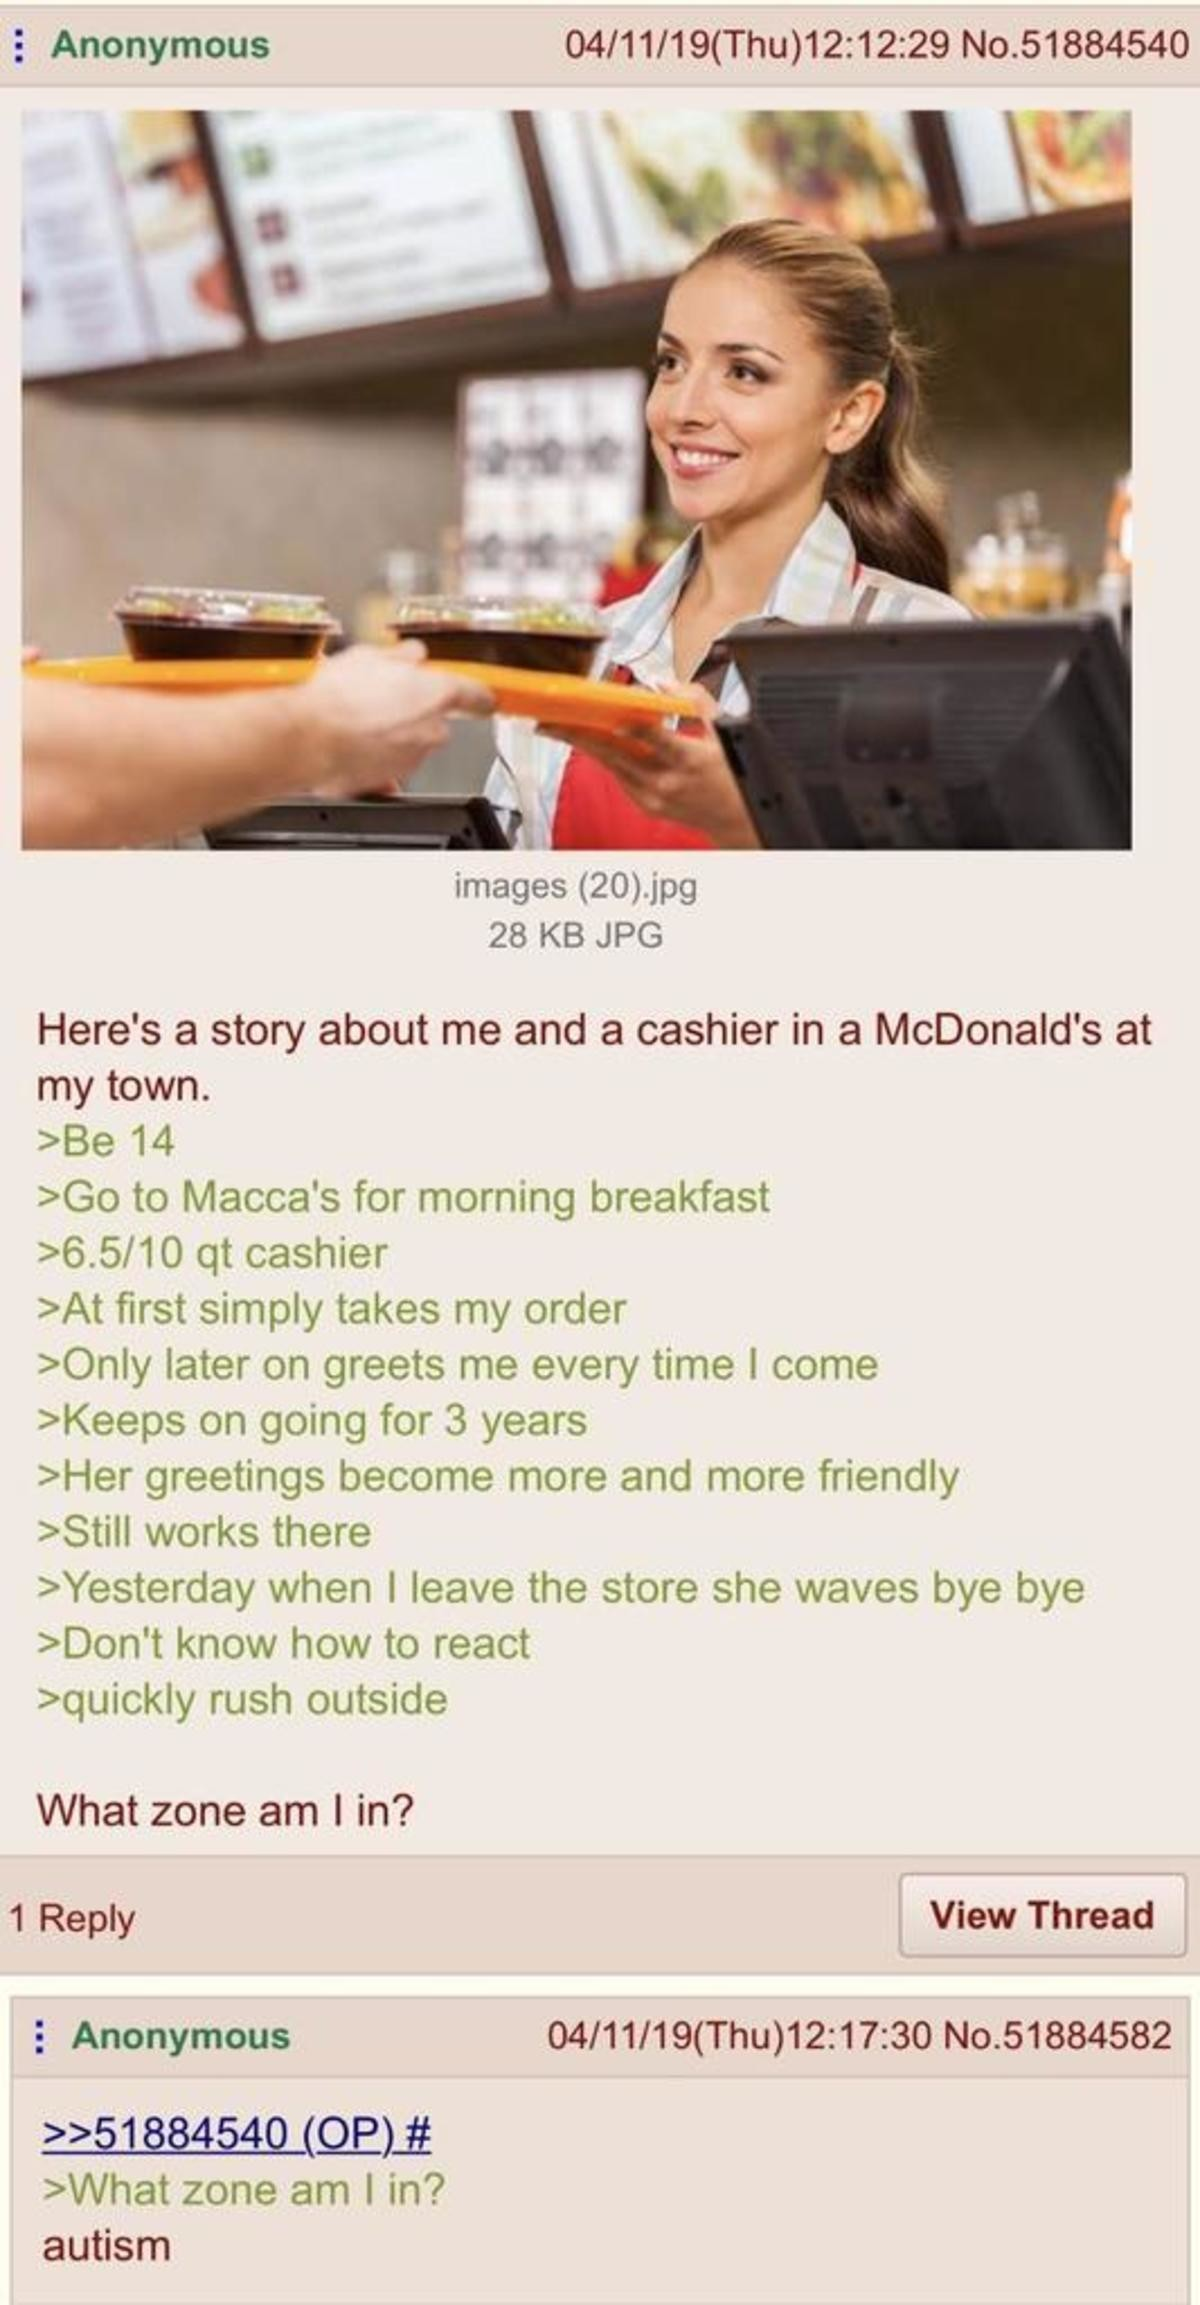 Anon goes to Maccas. .. A customer, you're a customer If they recognize you they say hi because their job is so boring that they need any distraction